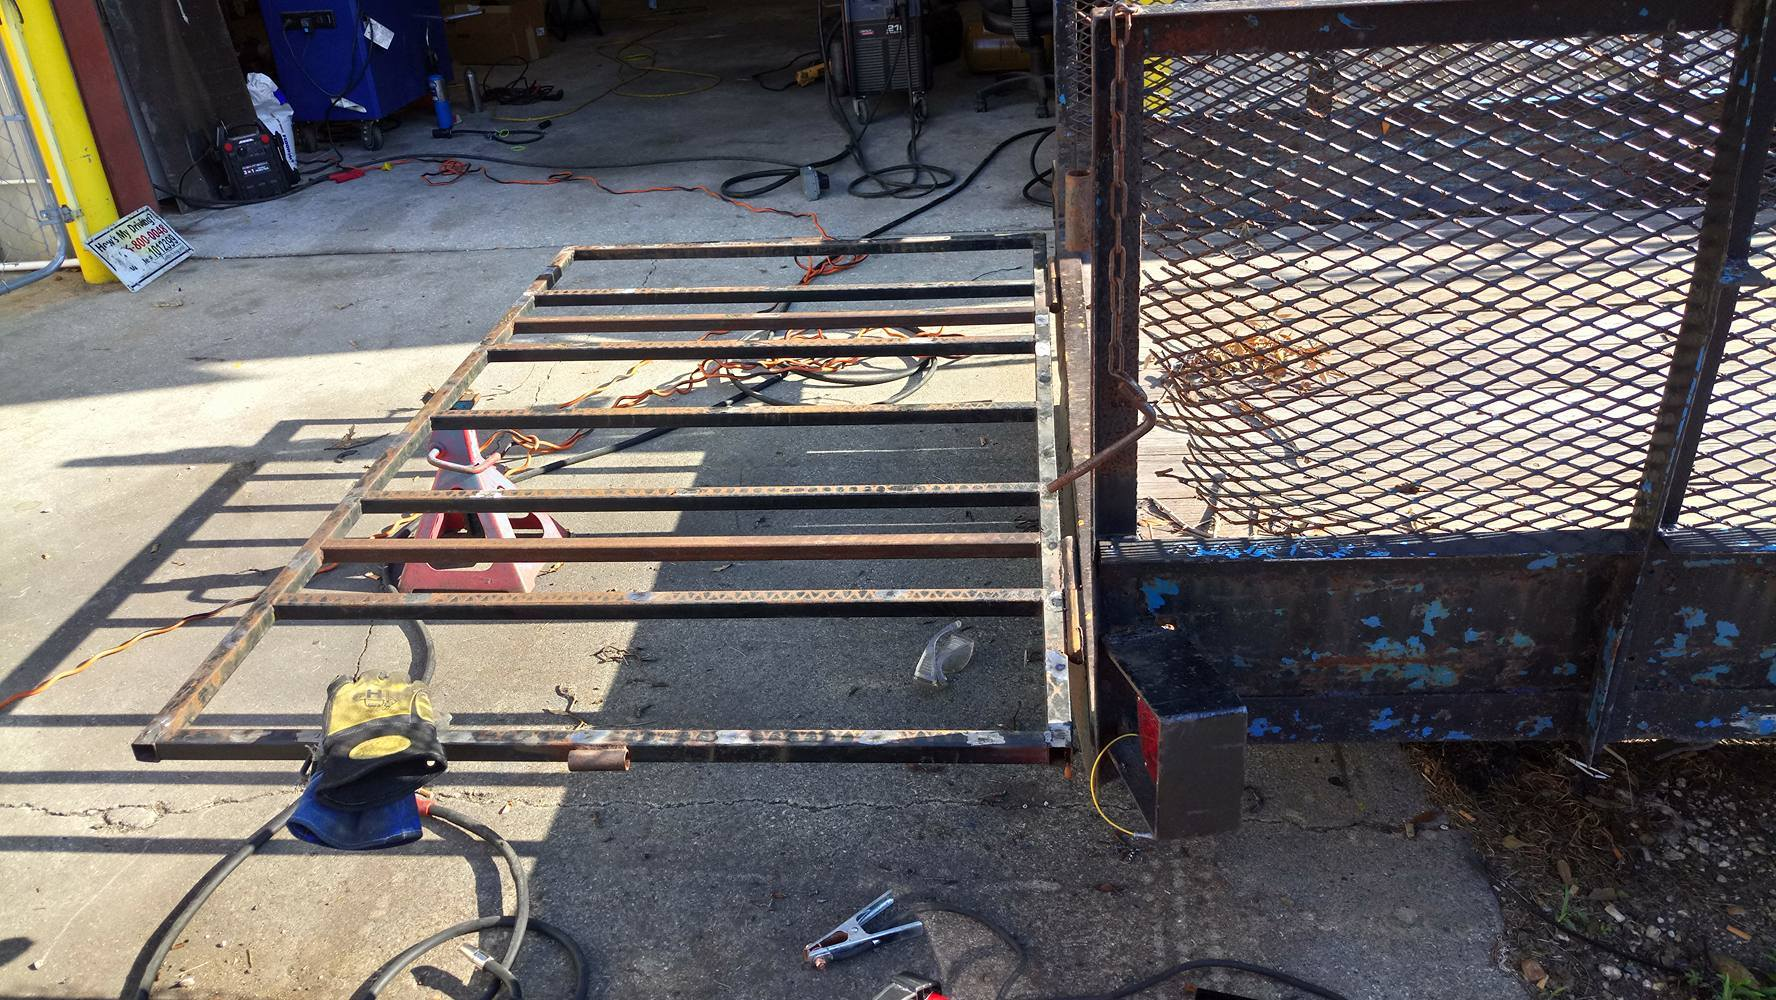 trailer gate before welding a metal mesh on